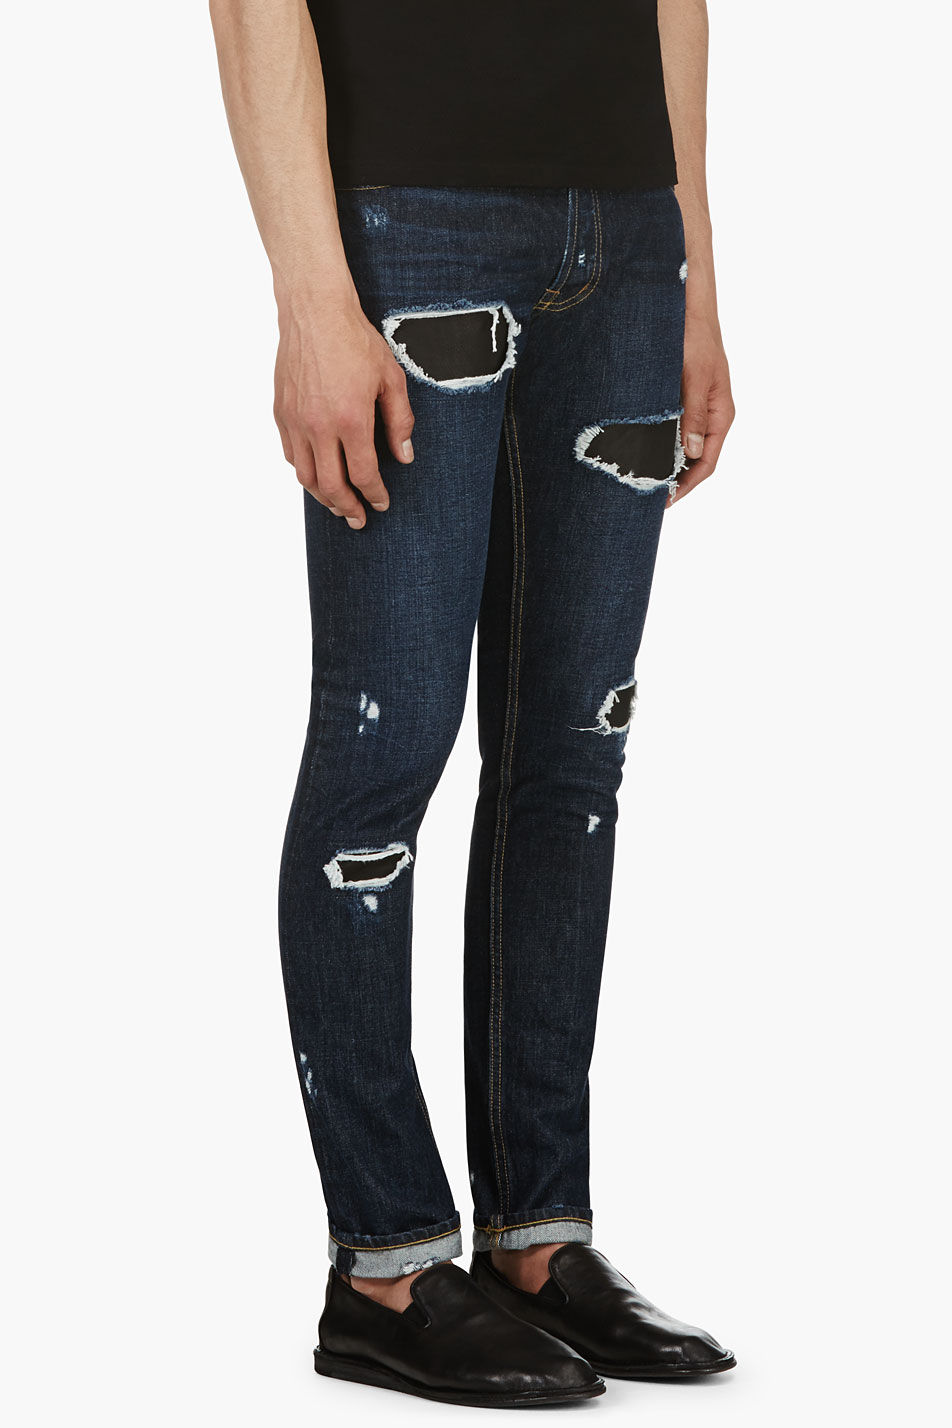 Public School Indigo Distressed Leather Patch Skinny Jeans